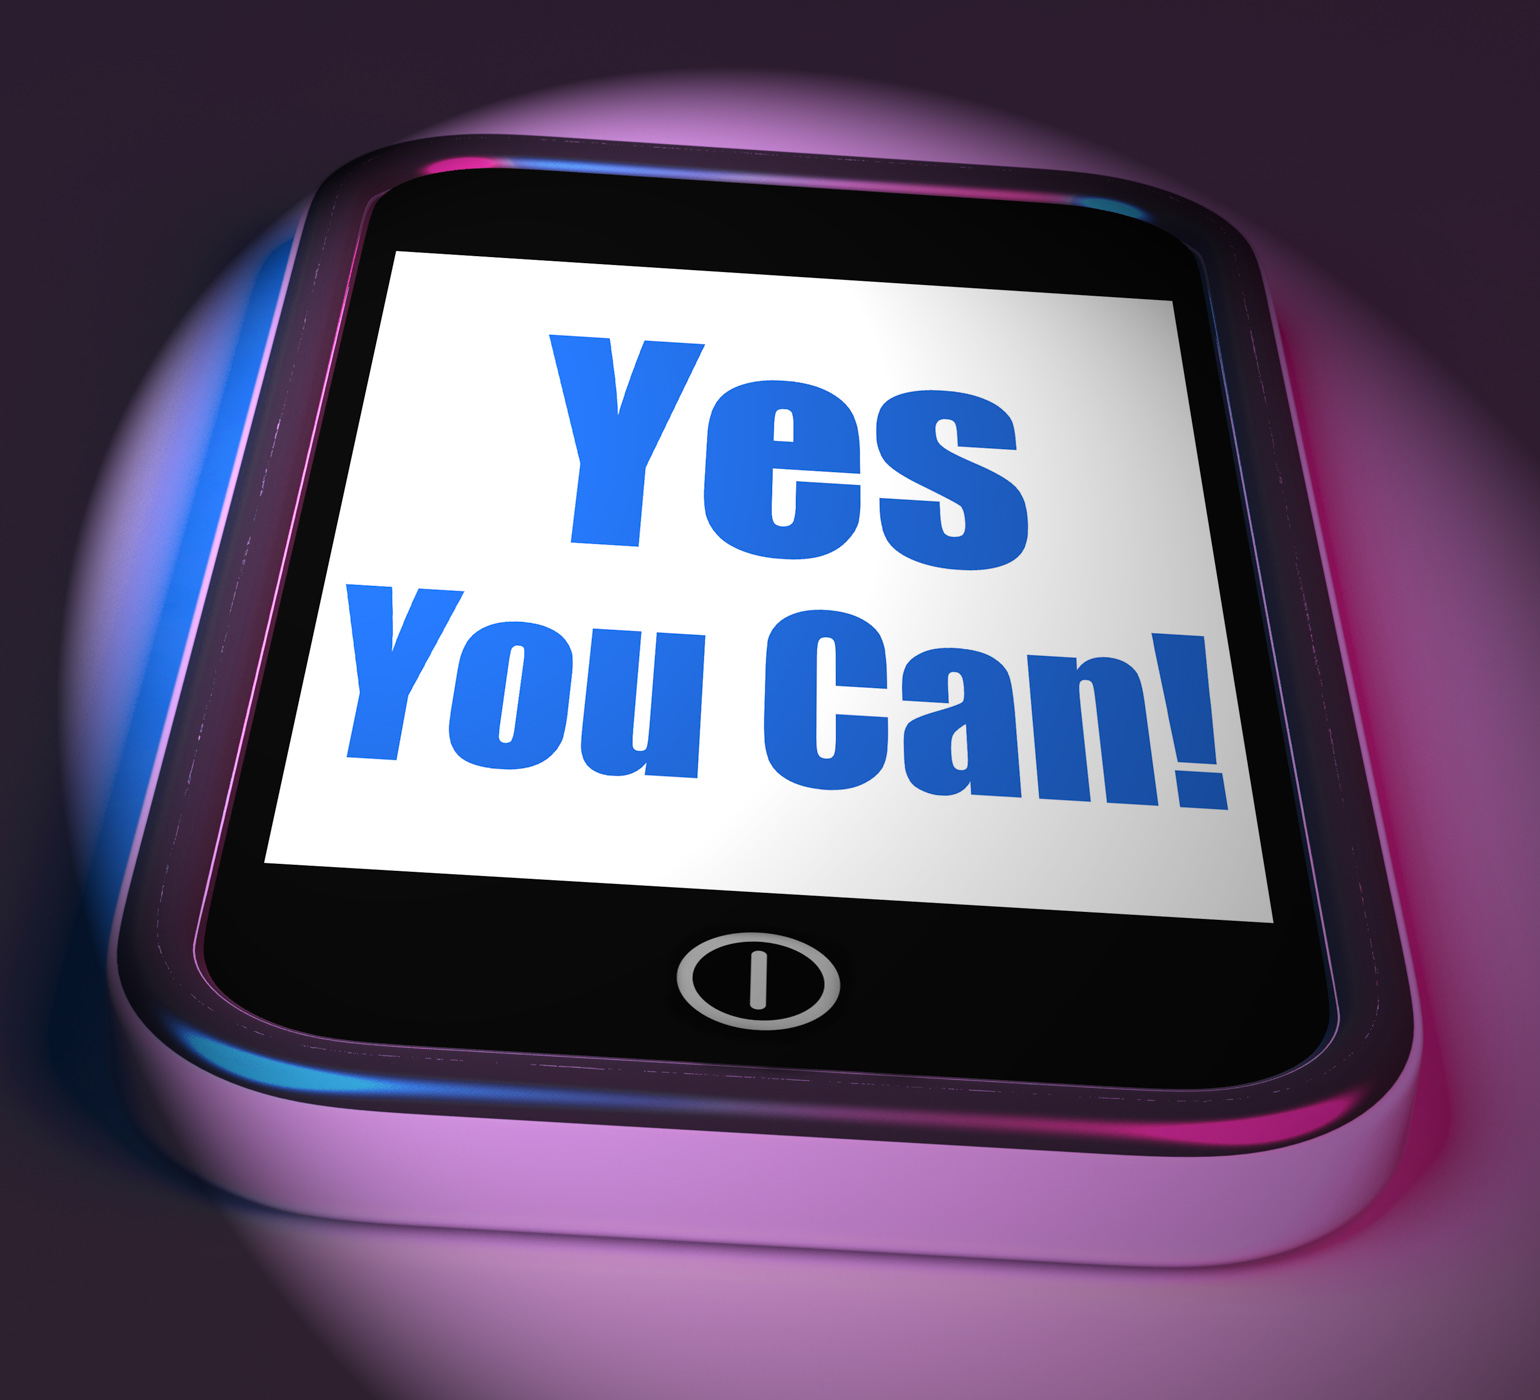 Yes you can on phone displays motivate encourage success photo